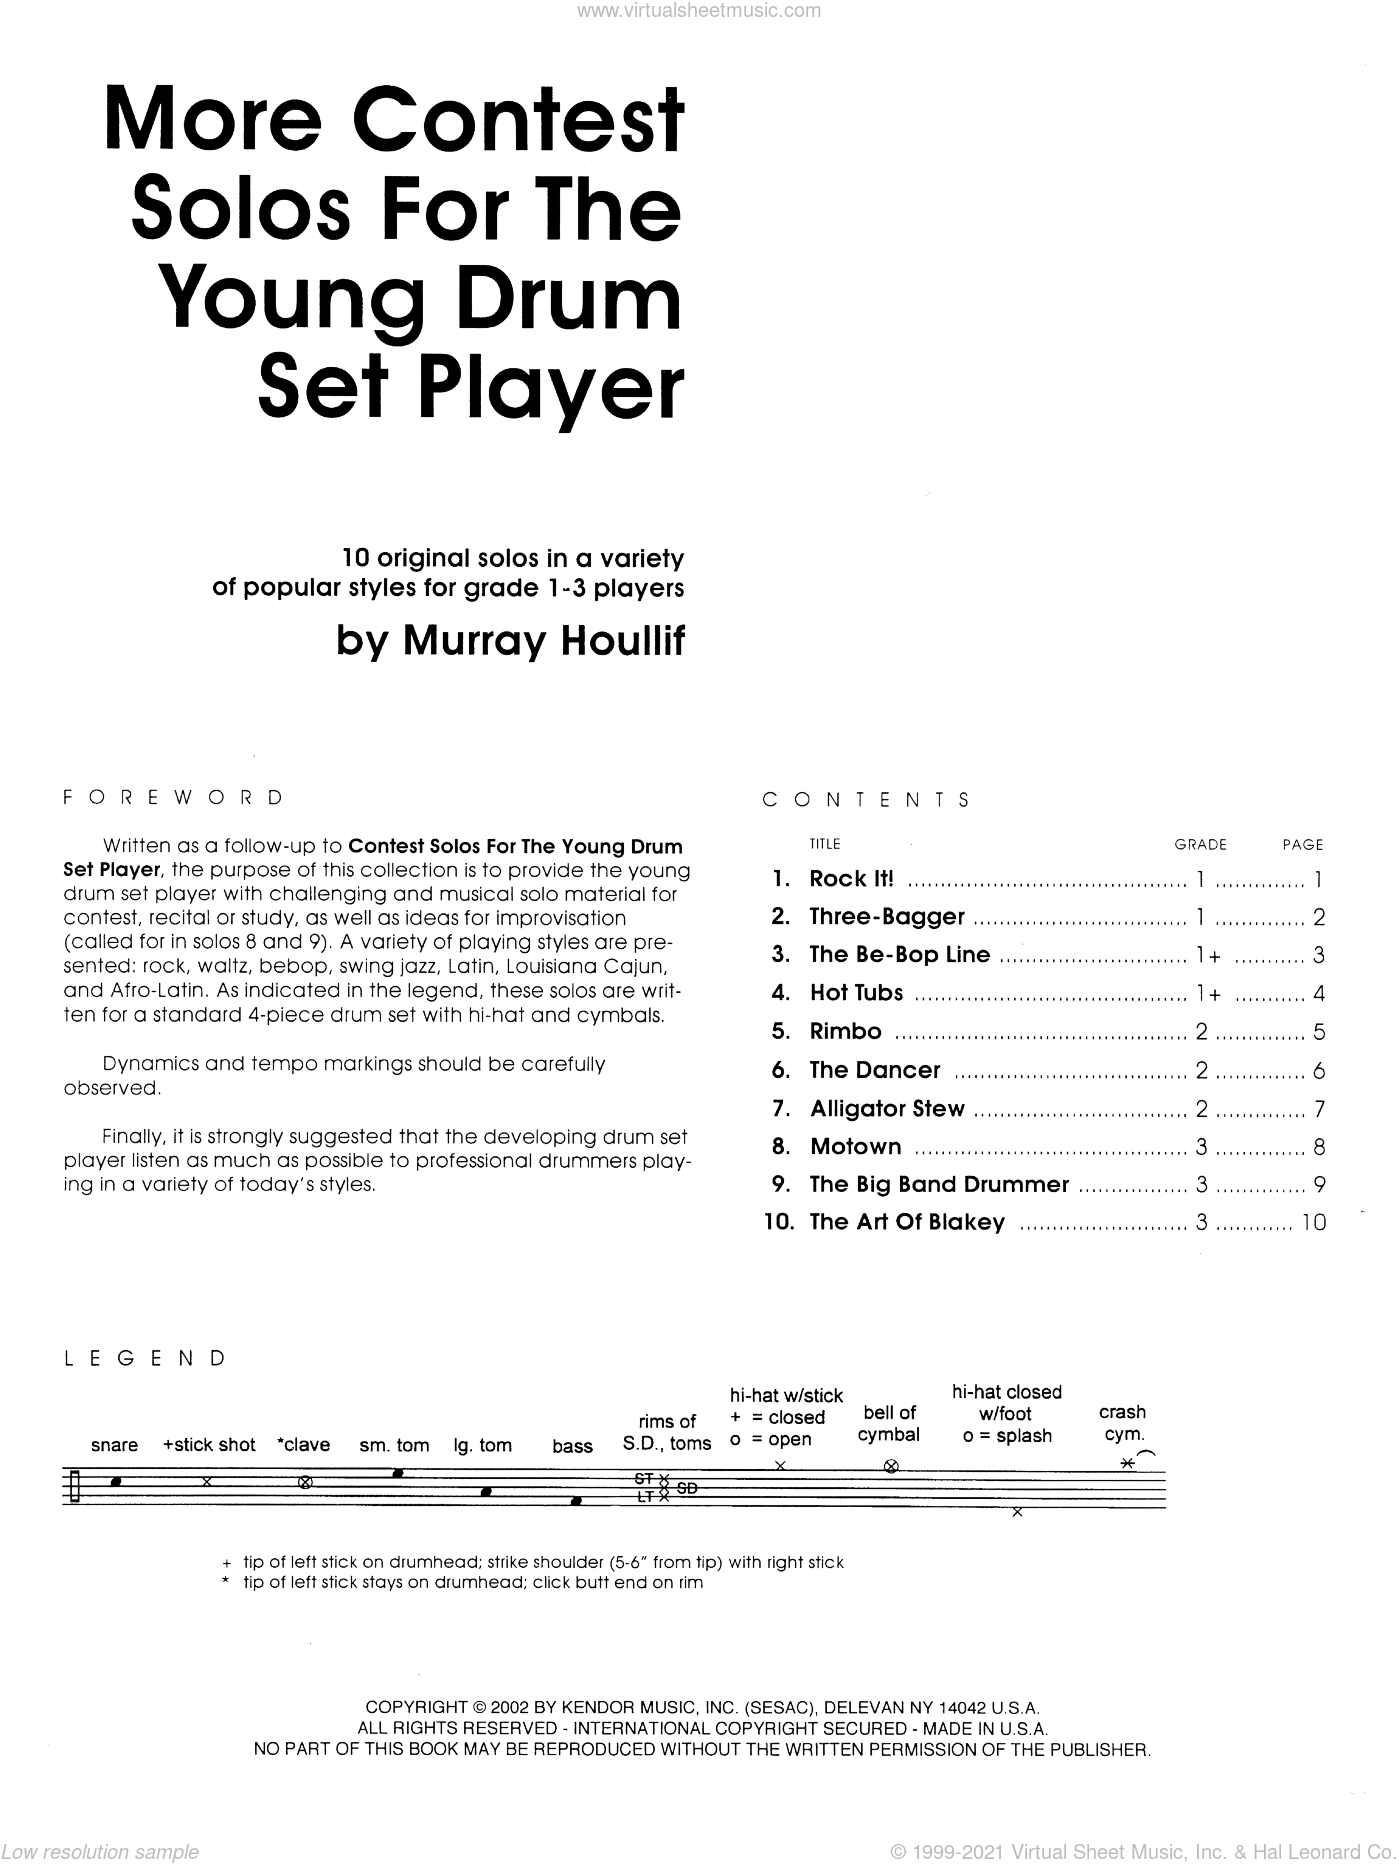 More Contest Solos For The Young Drum Set Player sheet music for percussions by Houllif, classical score, intermediate skill level